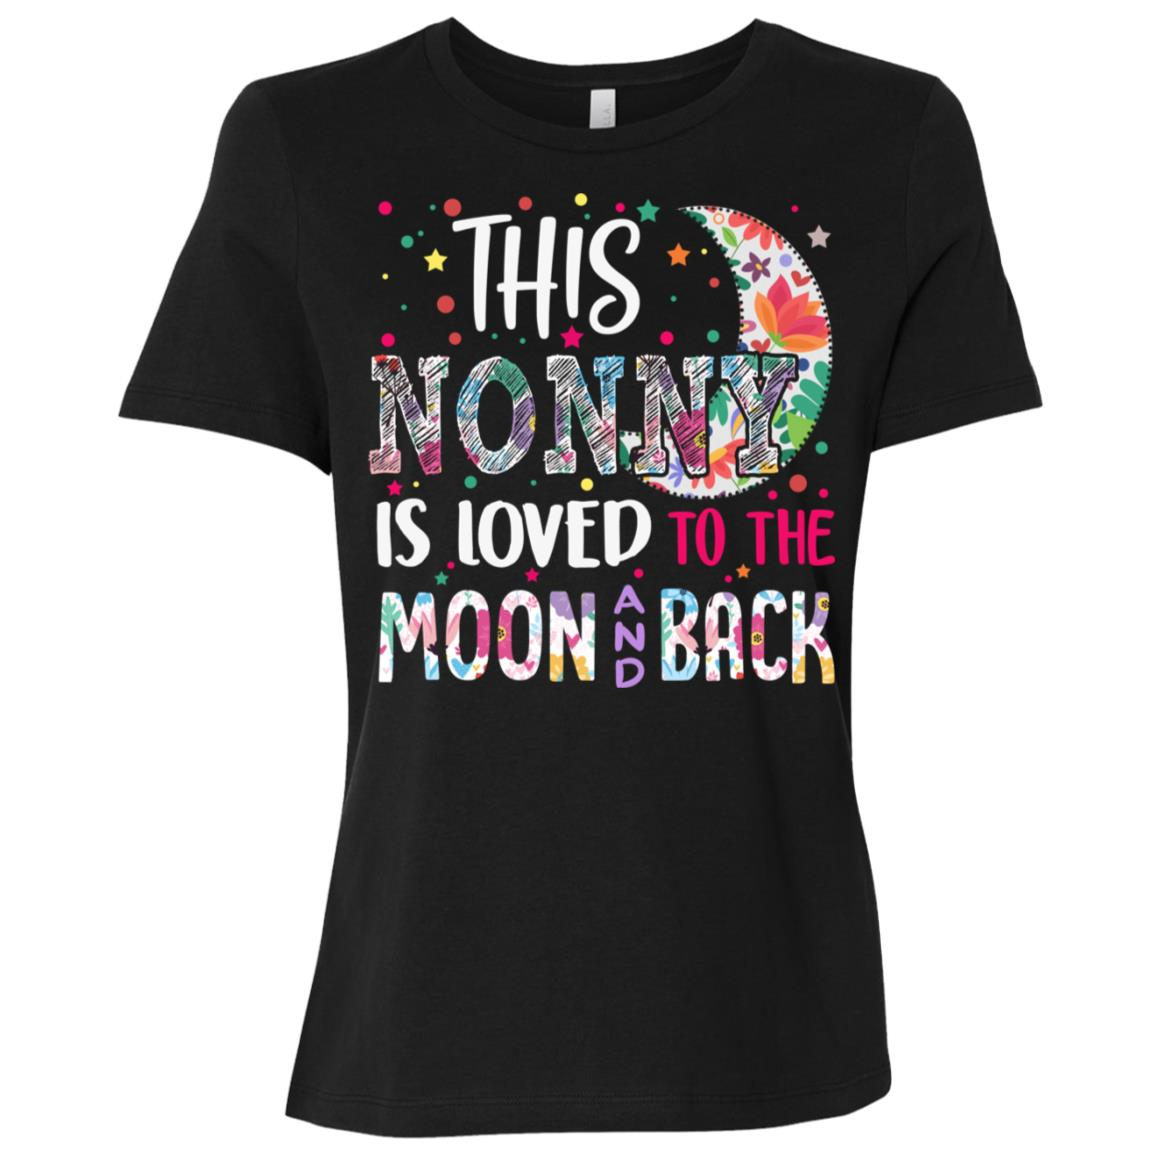 This Nonny is loved to the moon and back Women Short Sleeve T-Shirt